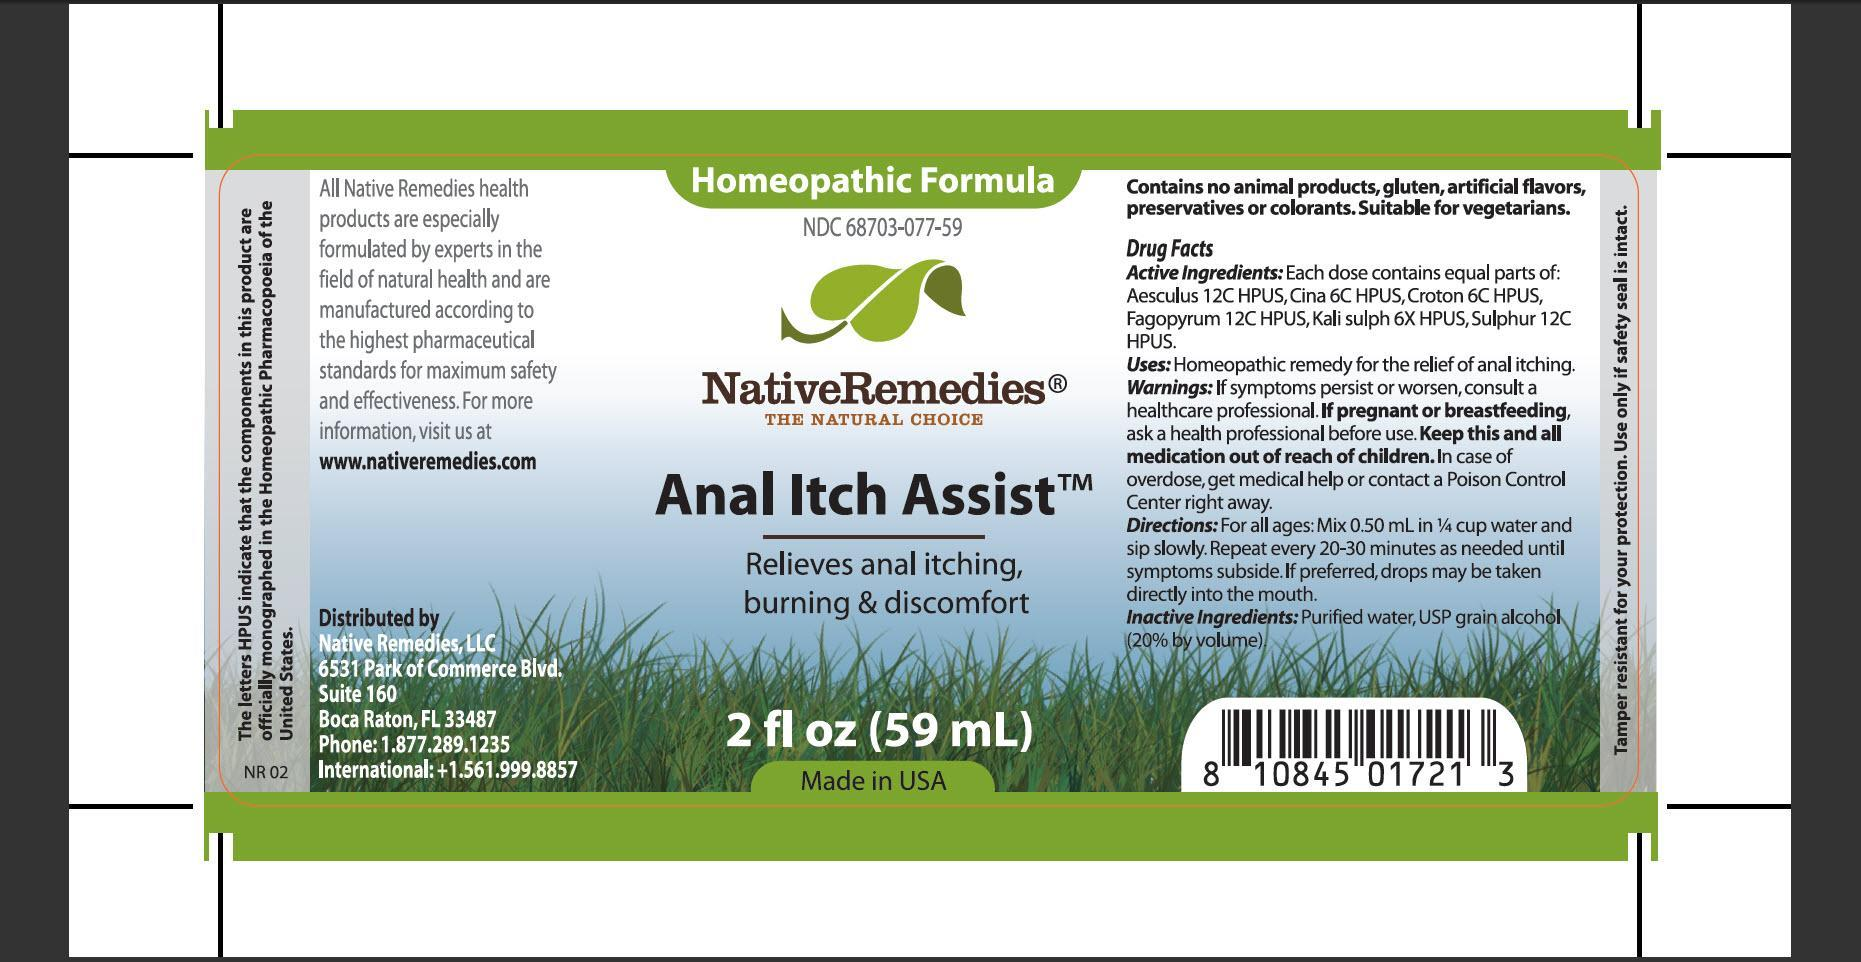 Anal Itch Assist (Aesculus, Cina, Croton, Fagopyrum, Kali Sulph, Sulphur) Tincture [Native Remedies, Llc]